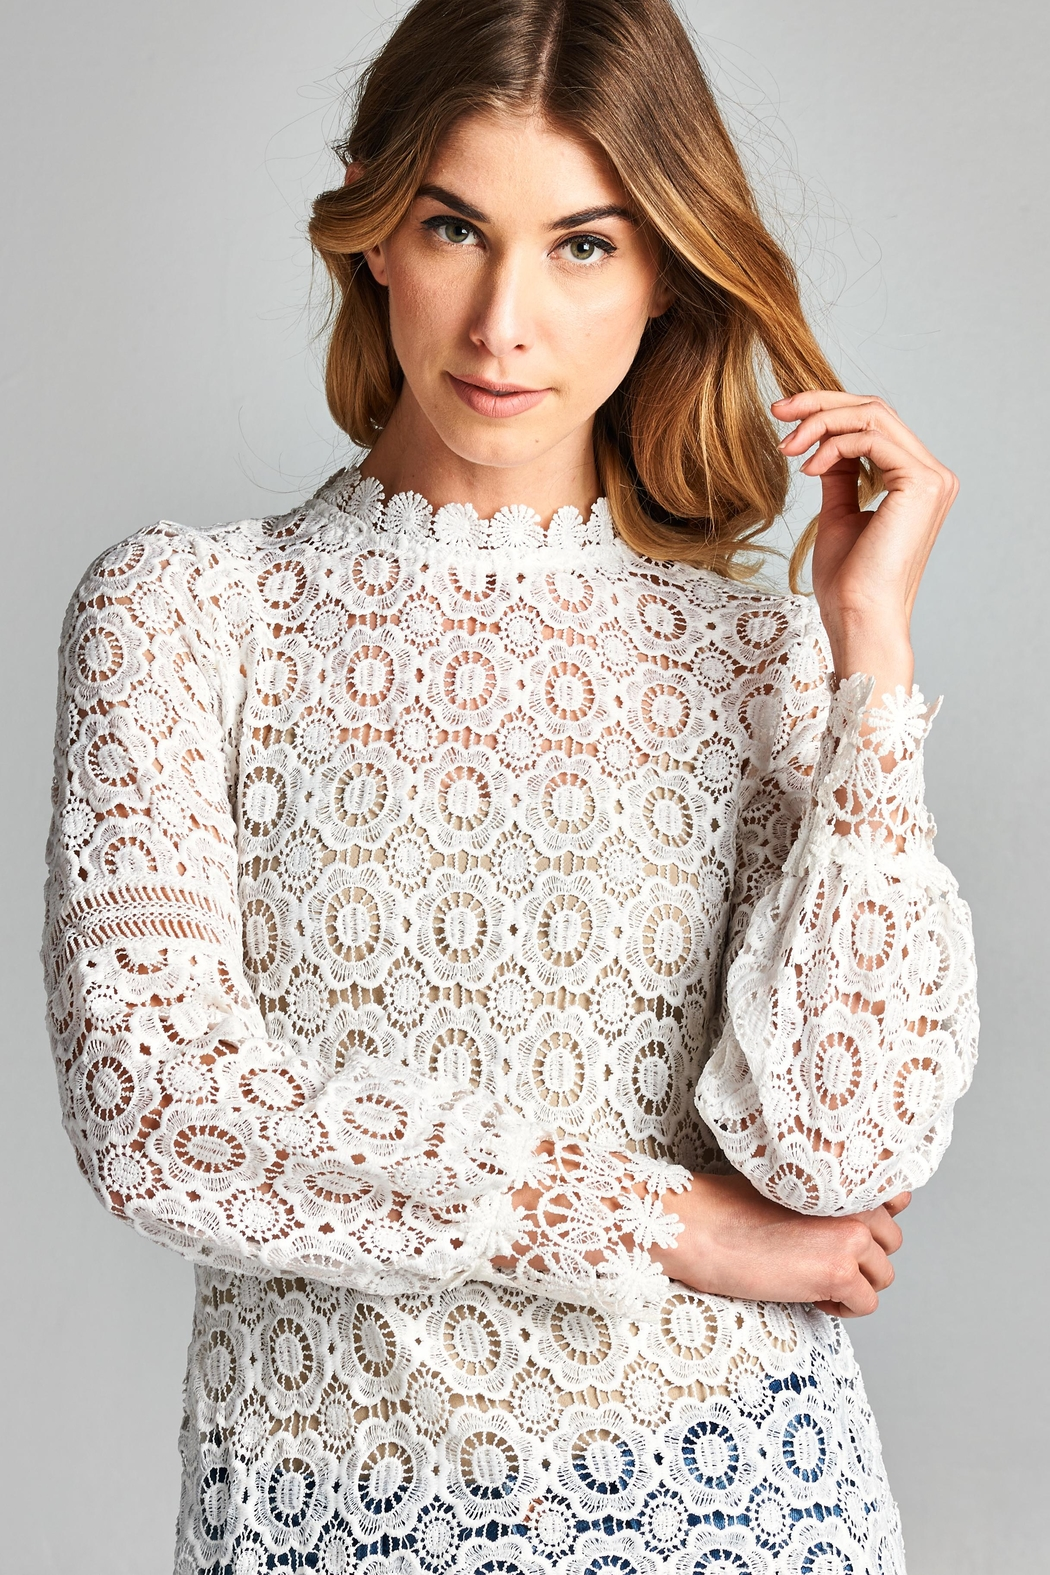 603f380e9348 Racine Lace Bell-Sleeve Top from California by Racine Love — Shoptiques